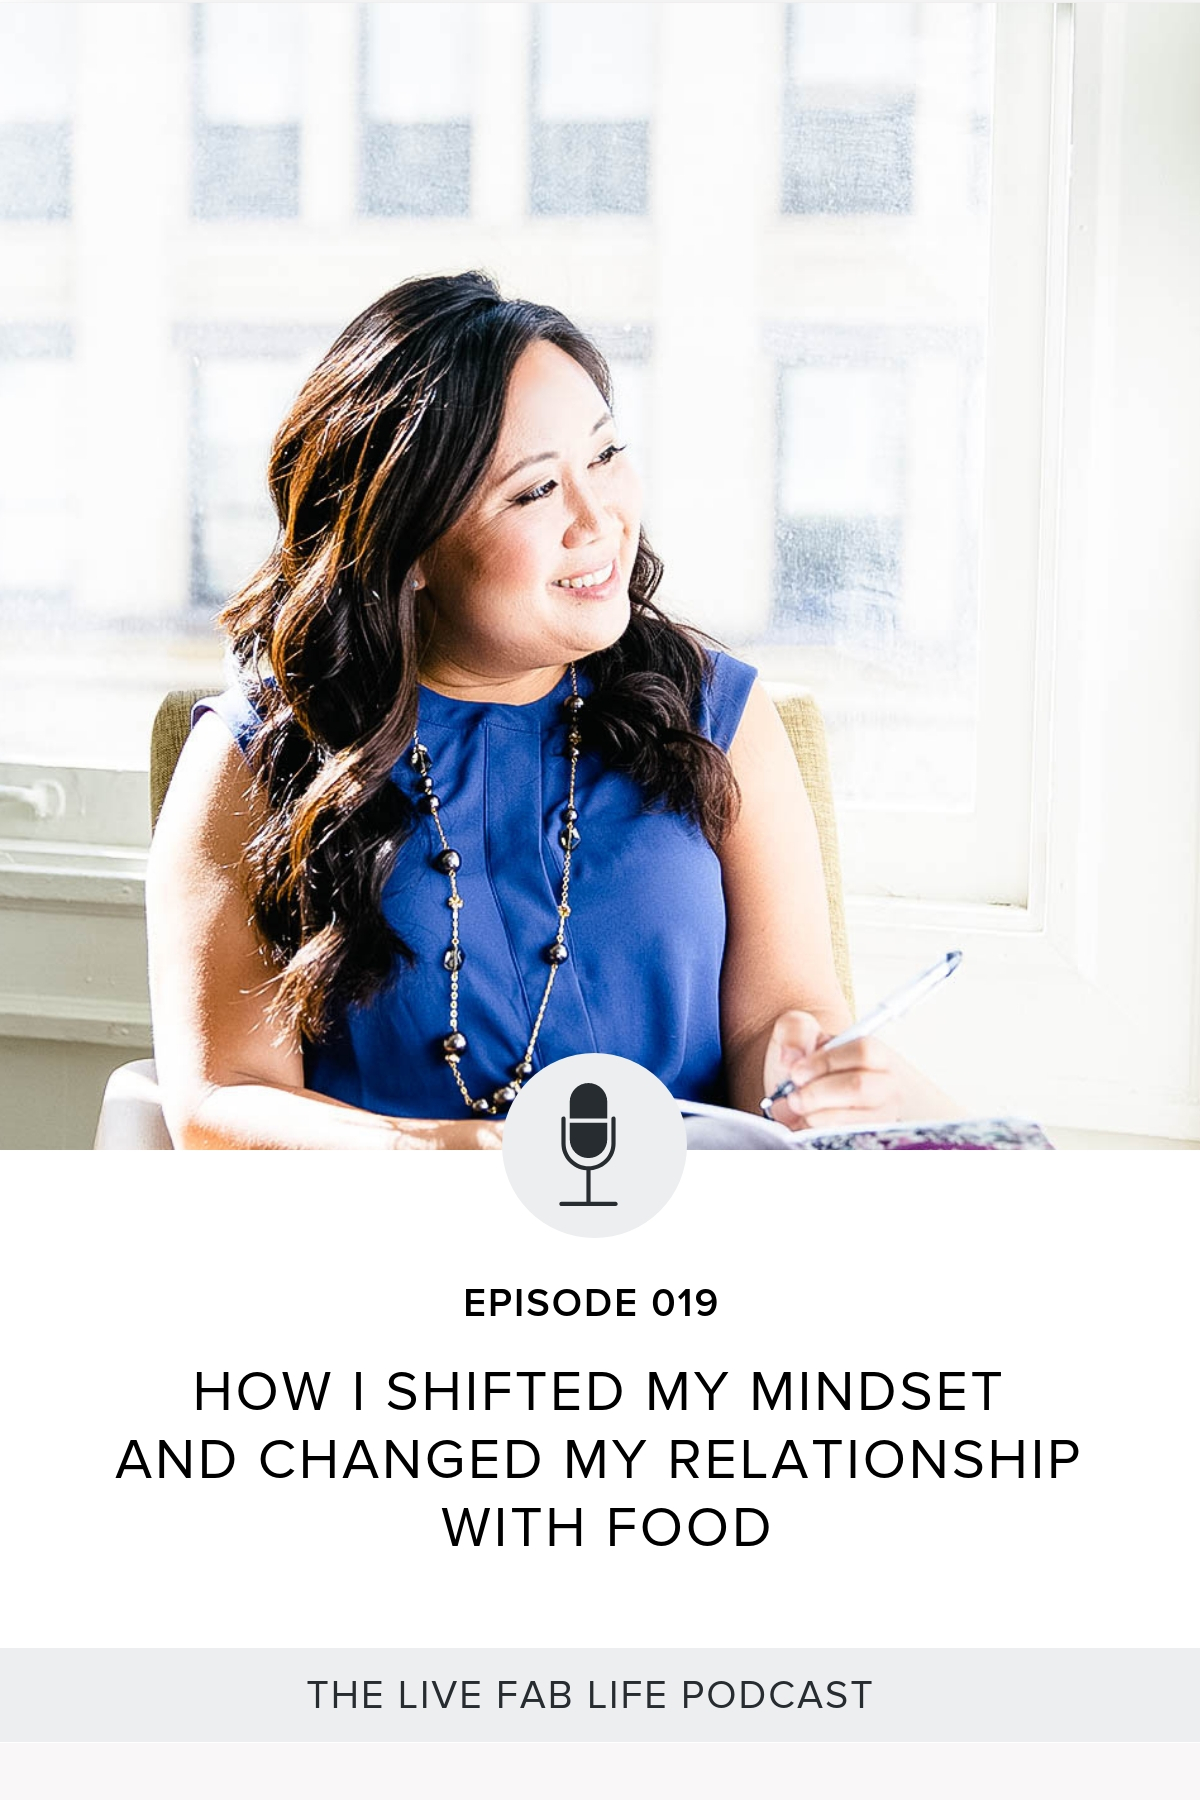 Episode 019: How I Shifted My Mindset and Changed My Relationship with Food